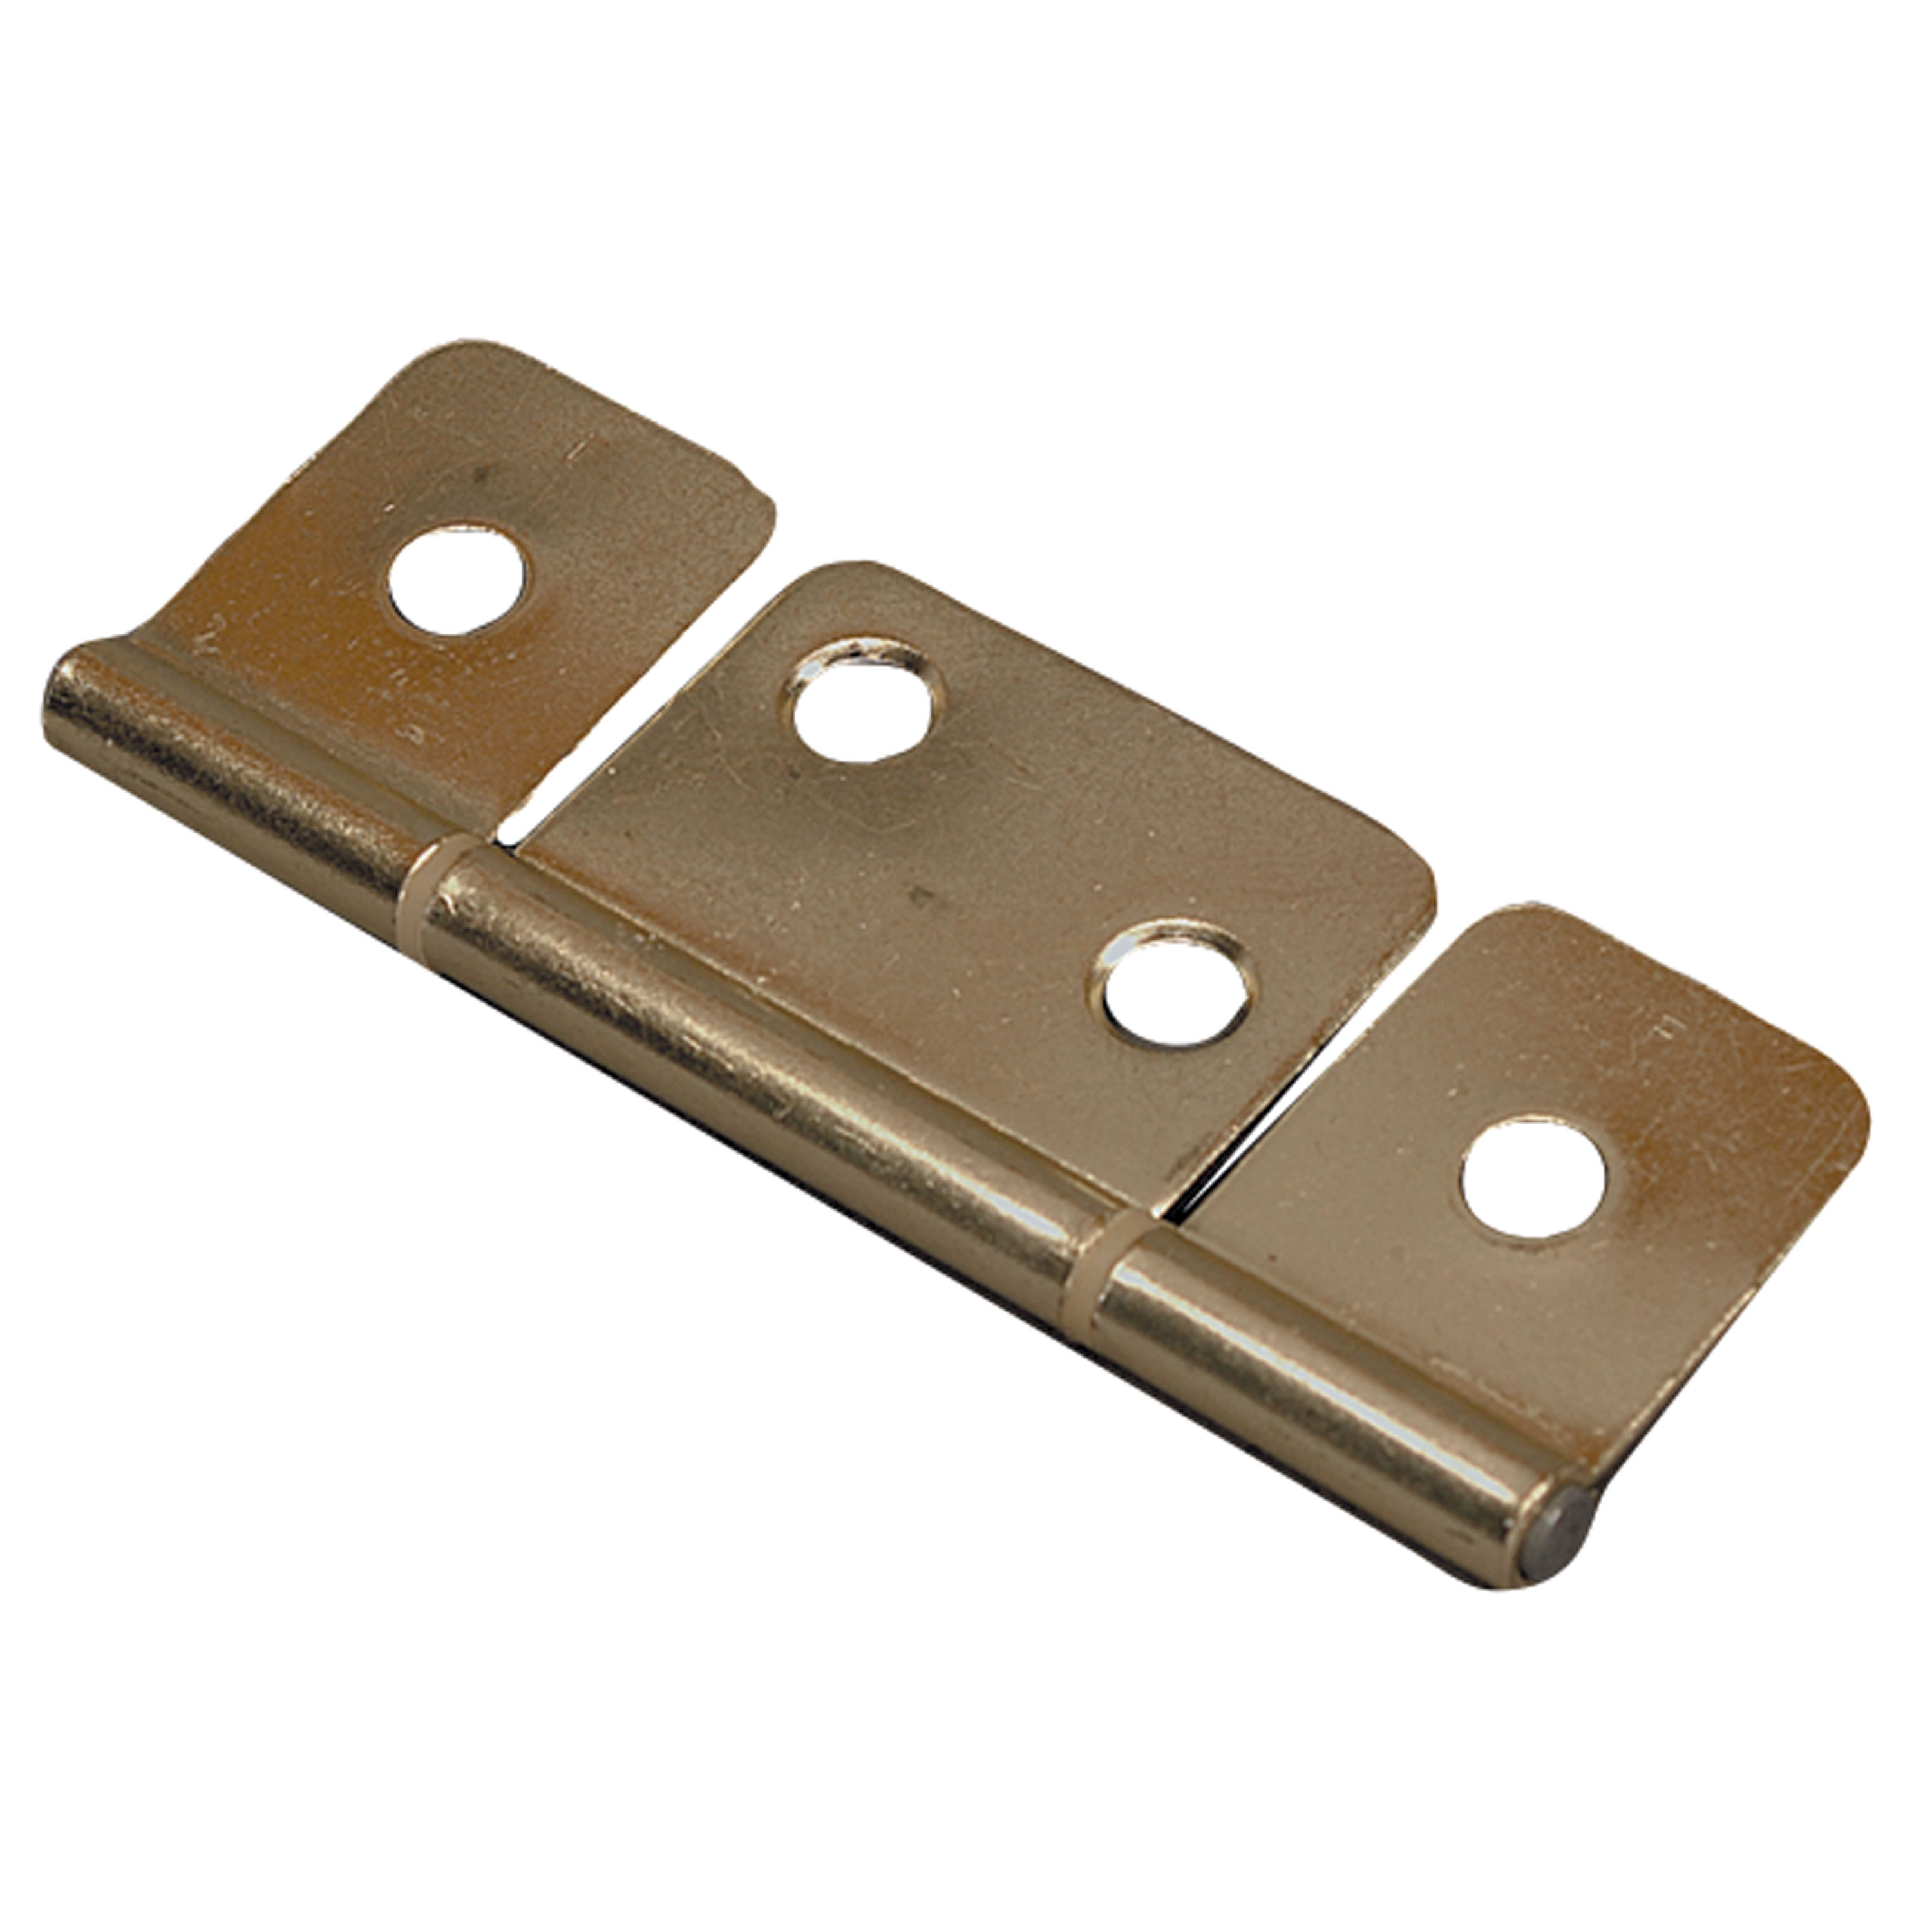 AP Products 013-046 Non-Mortise Brass Hinge